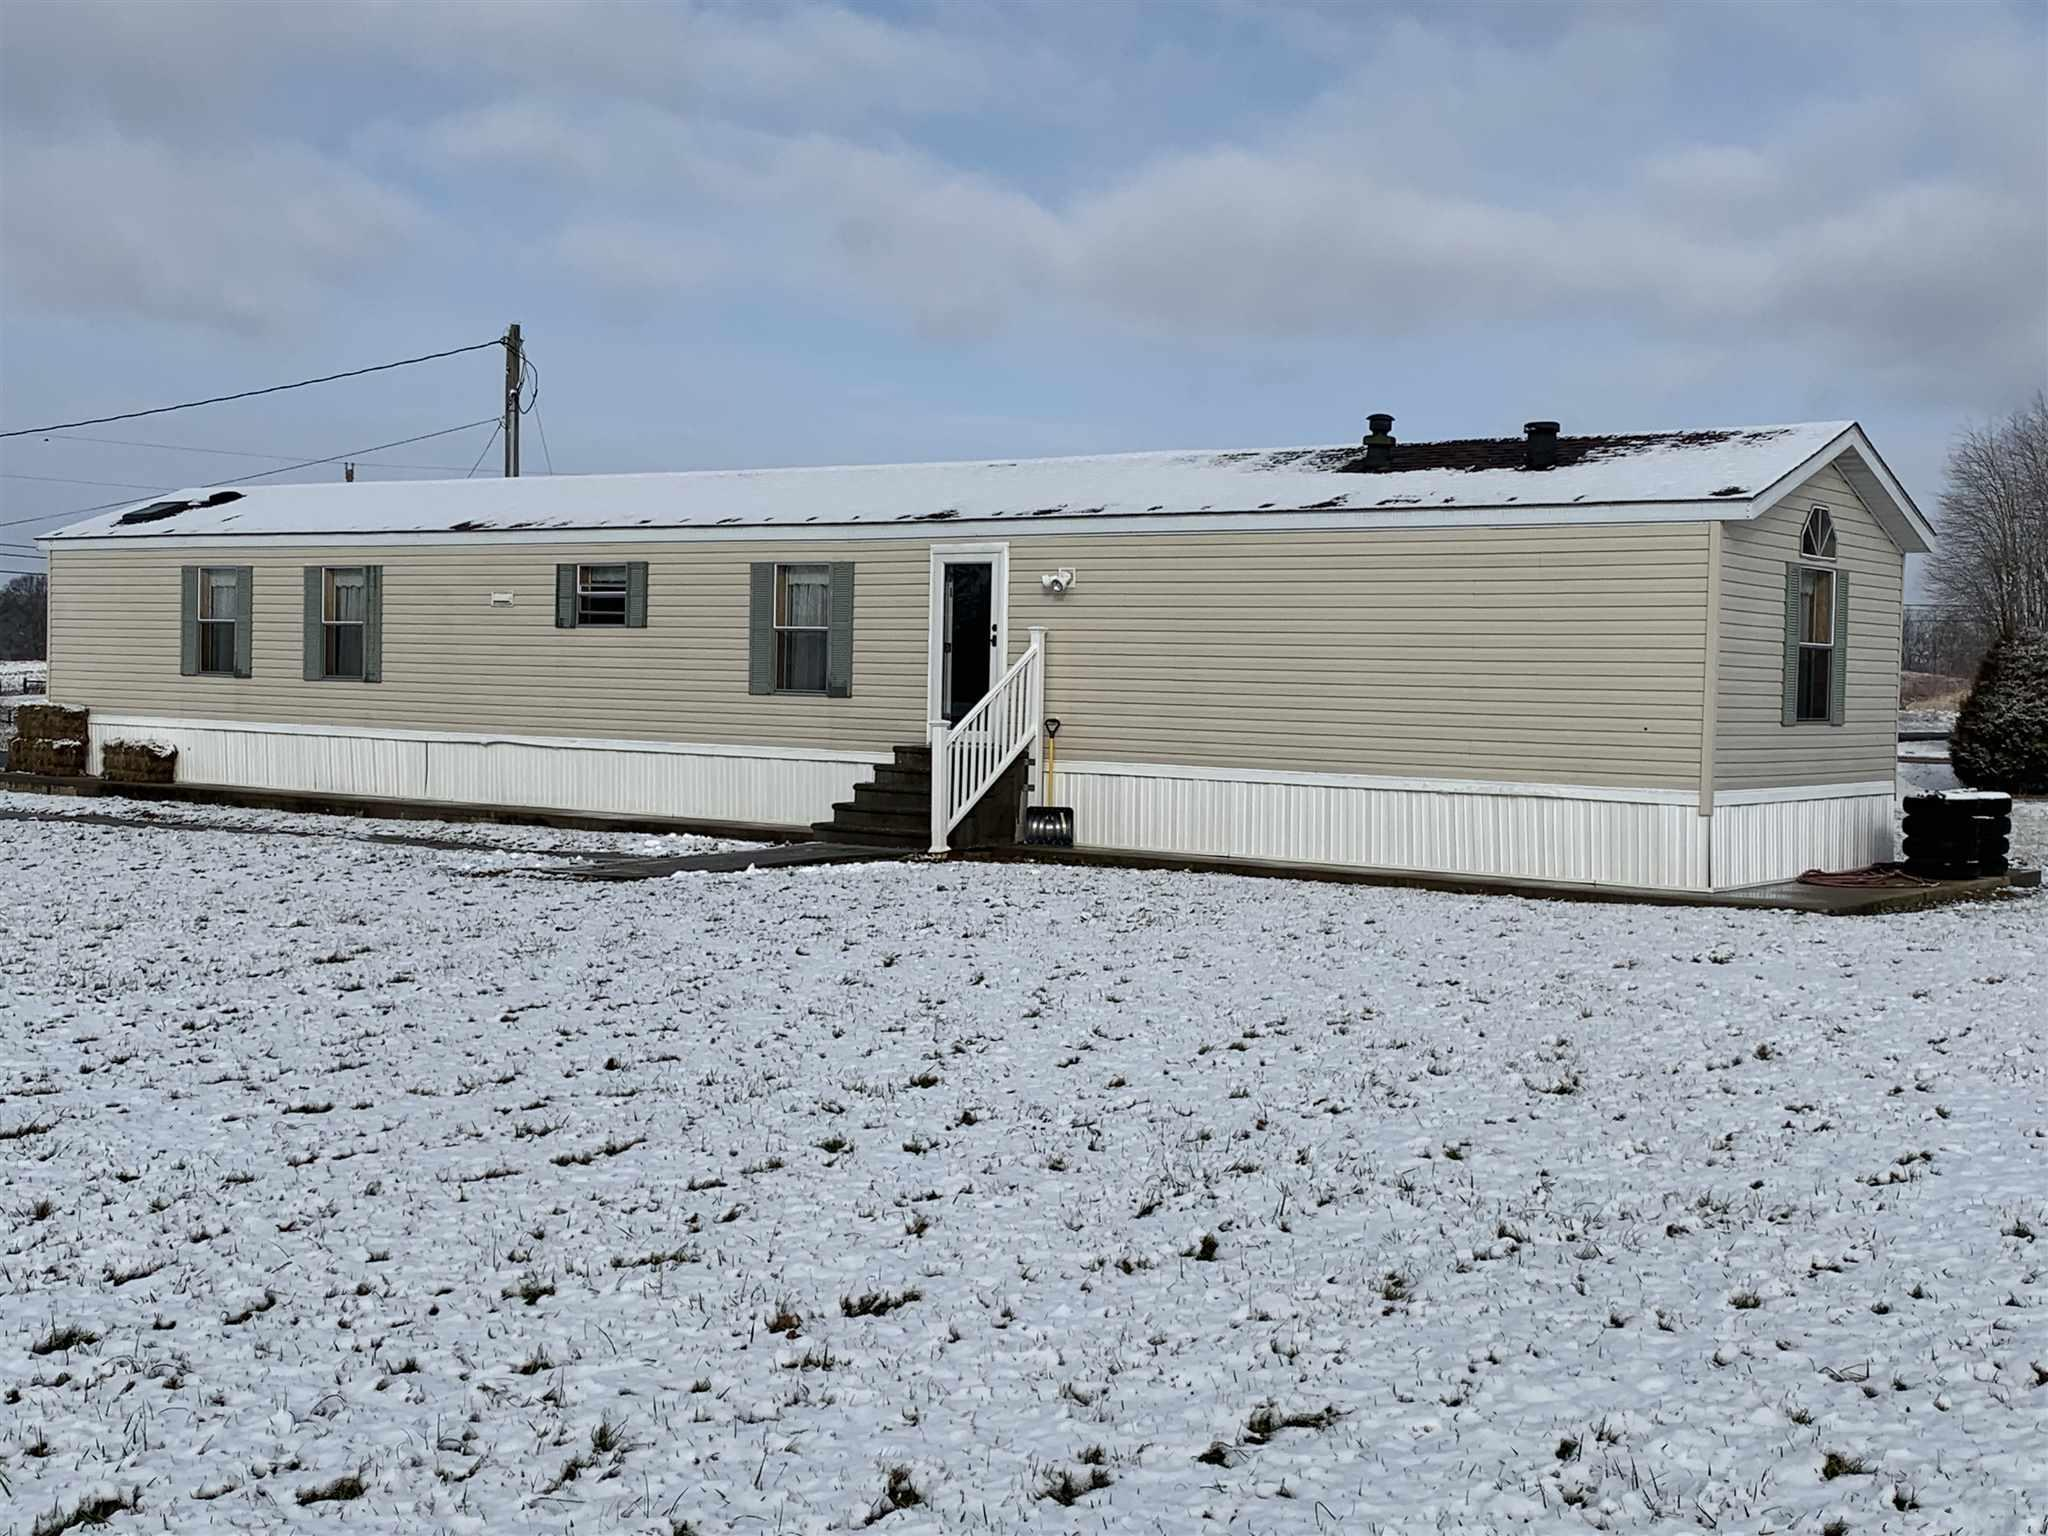 Super clean and ready for new occupancy. This 3 bedroom, 2 bath mobile home sets on 2 country acres overlooking hundreds of more pure country acres. New roof, new entry doors, and other nice updates to this home.